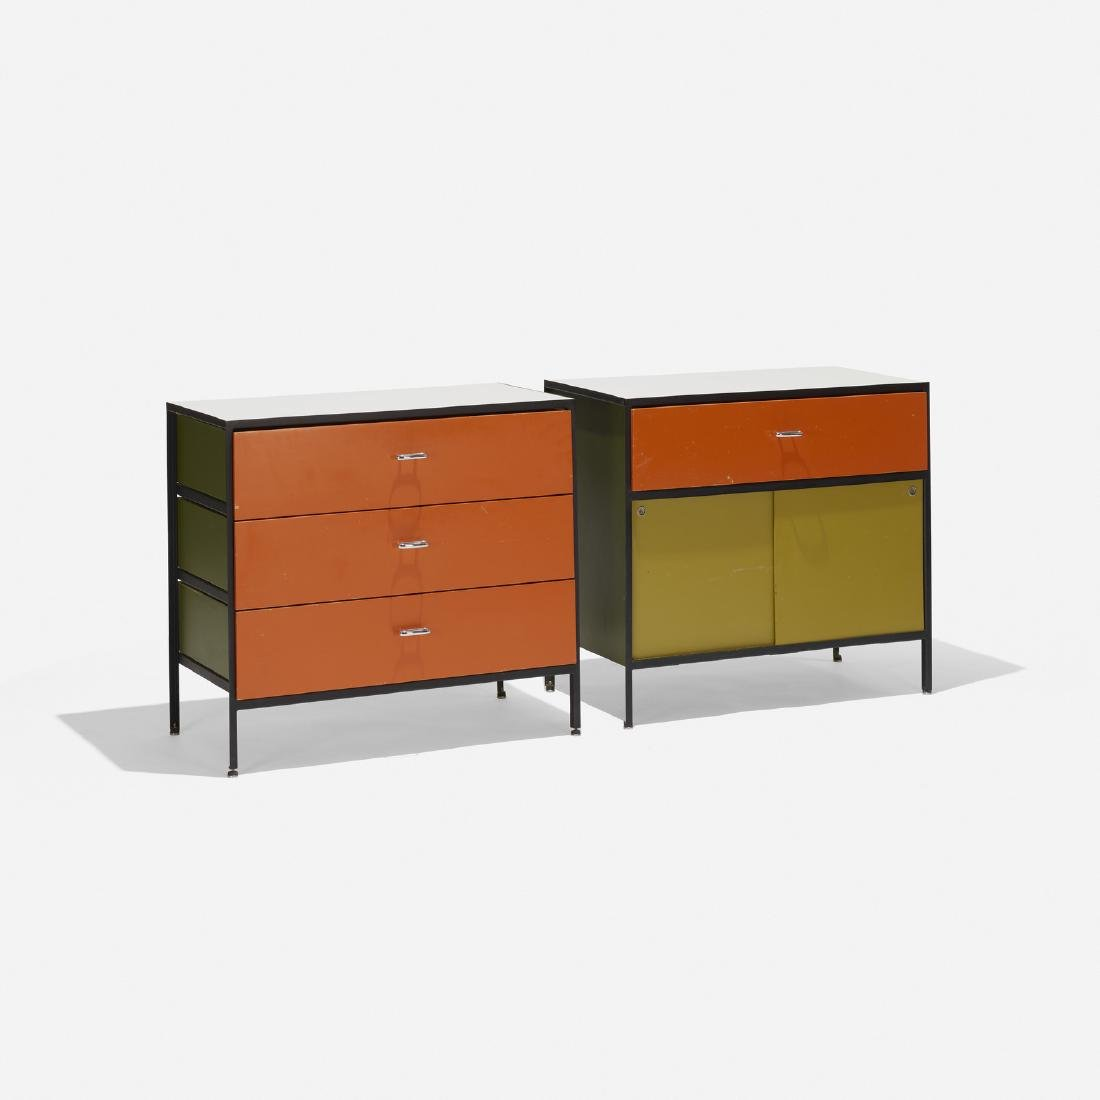 George Nelson & Associates, Steelframe cabinets, pair